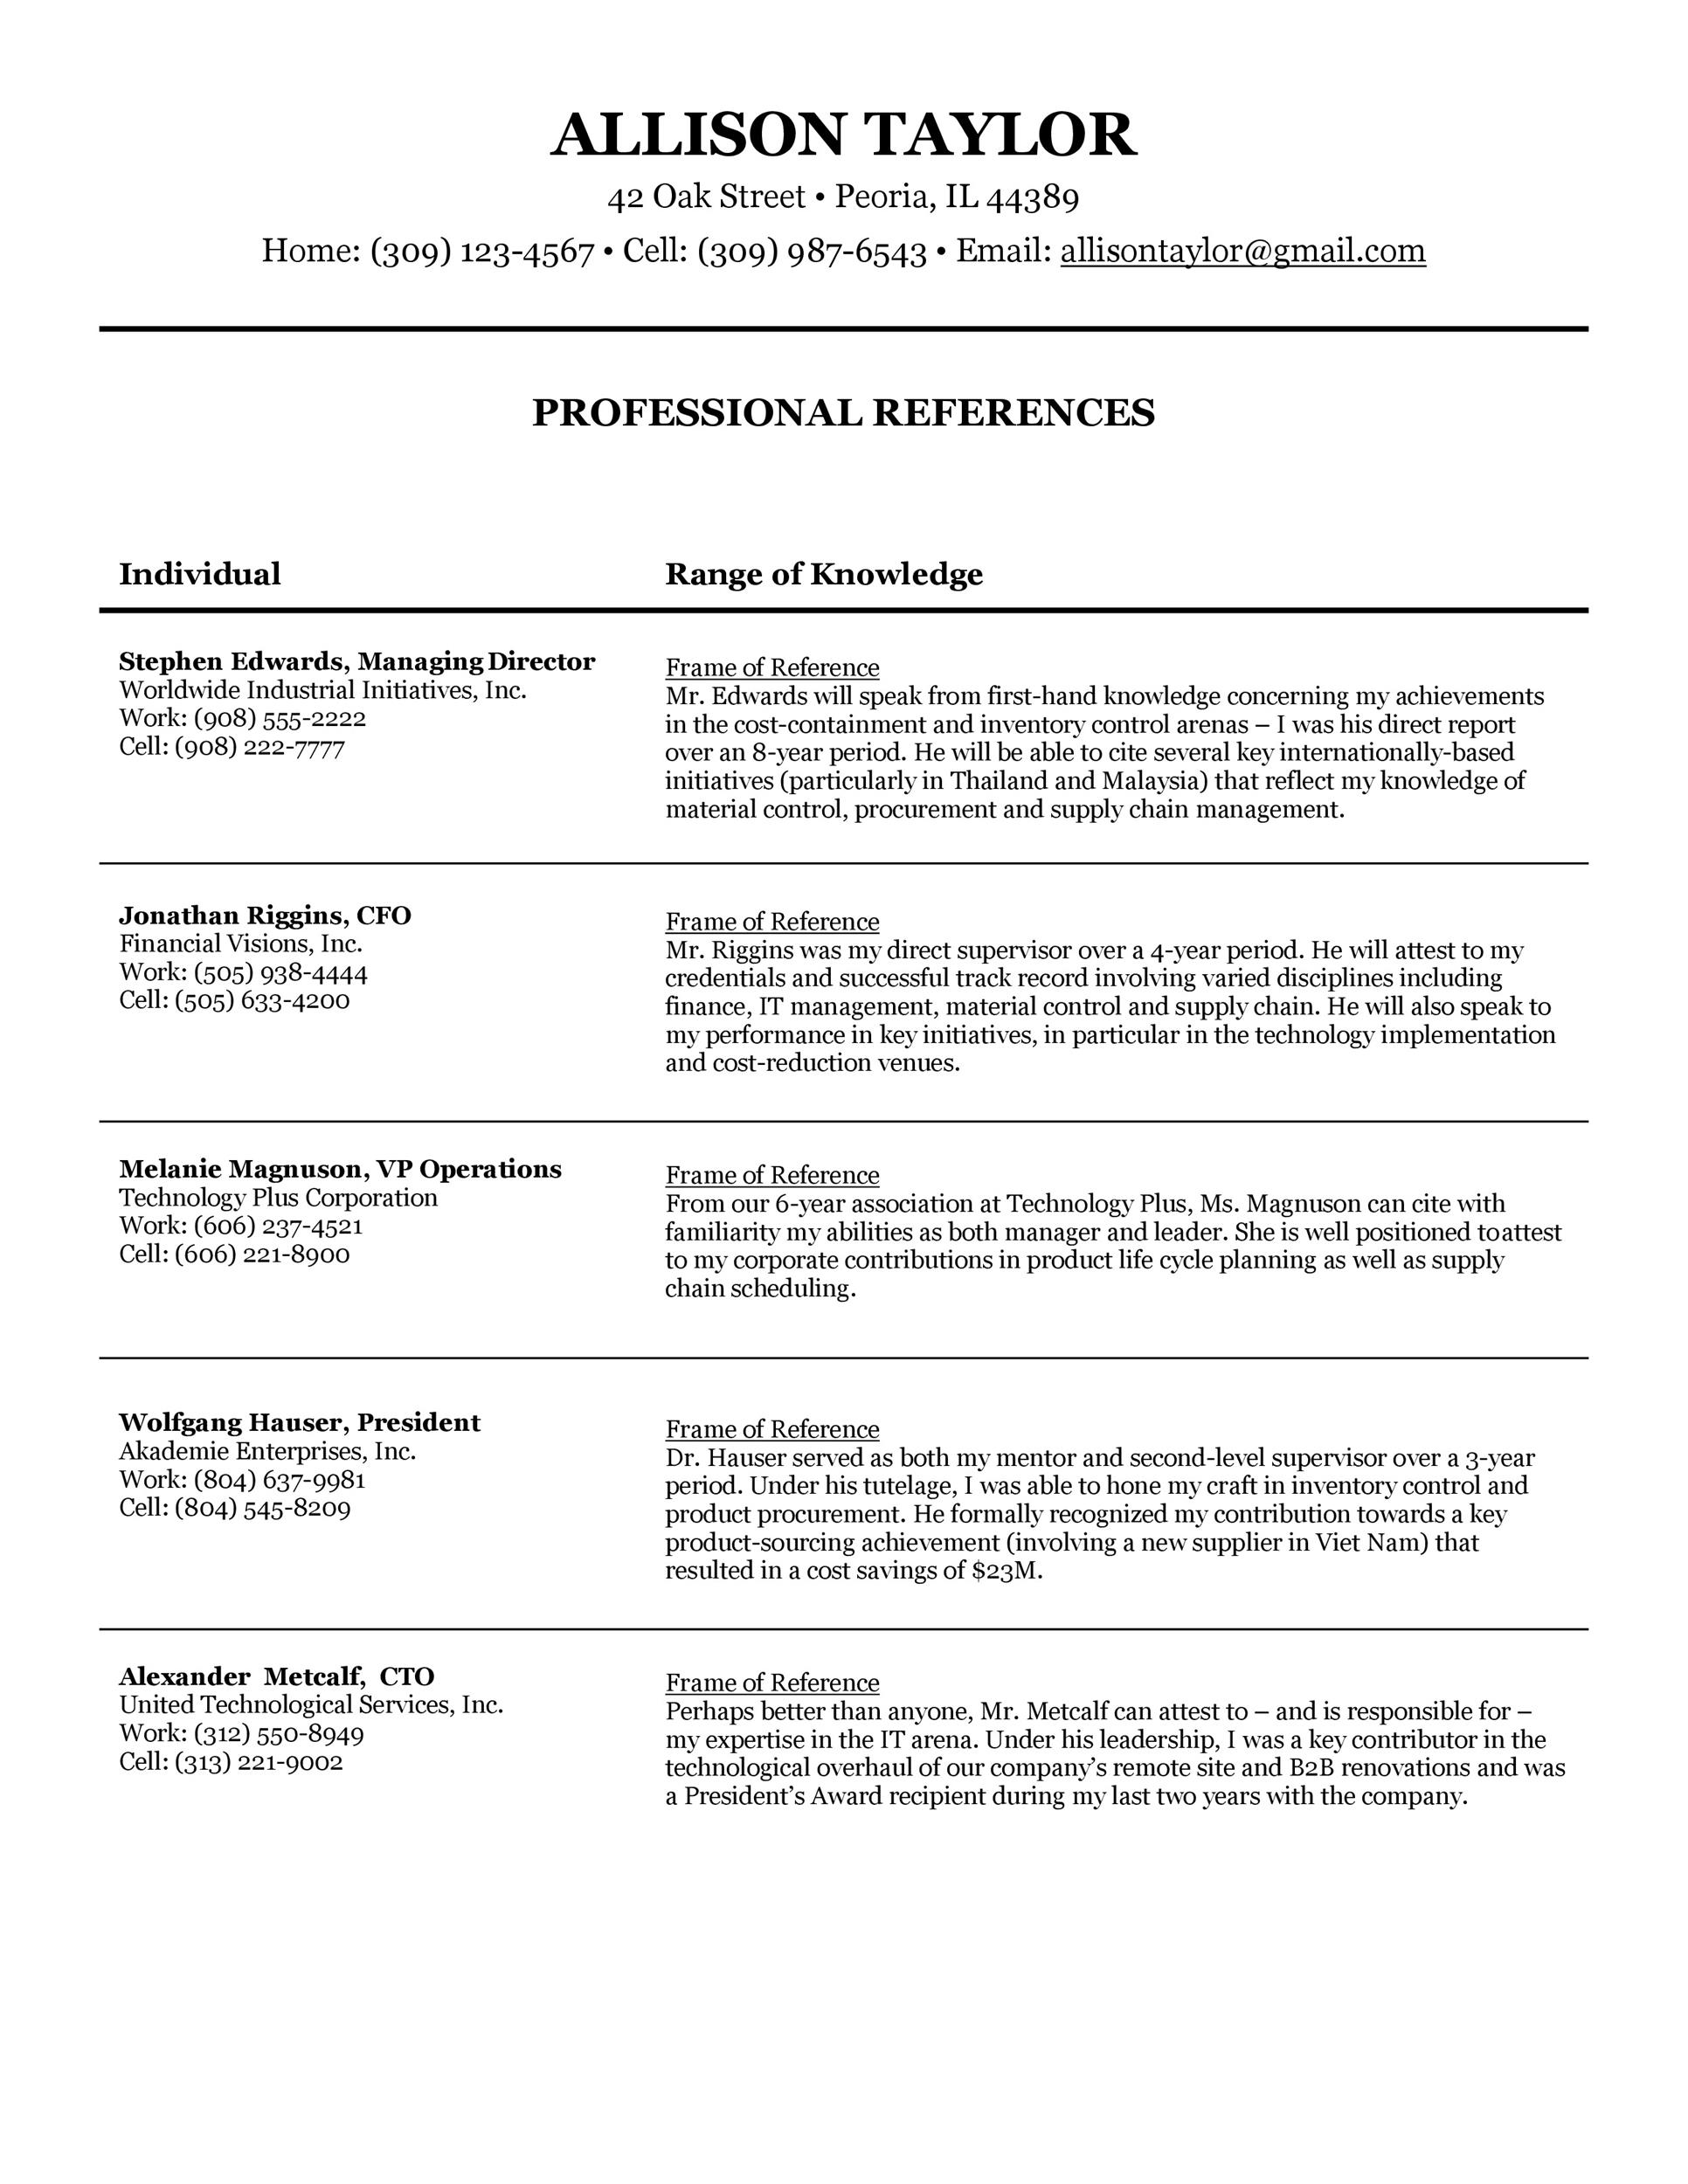 Free reference page template 15